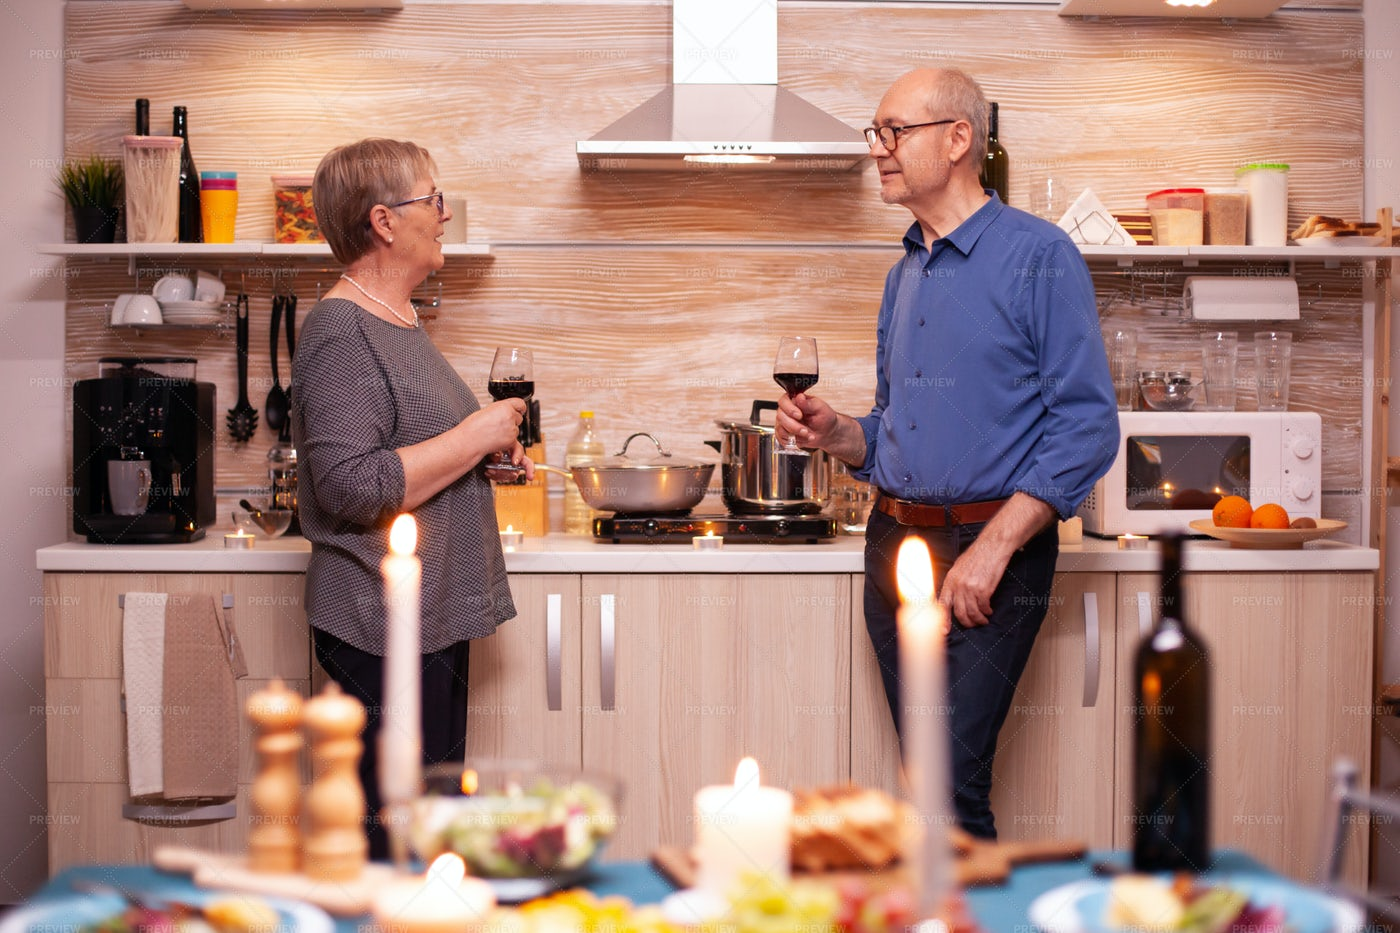 Drinking Wine In The Kitchen: Stock Photos